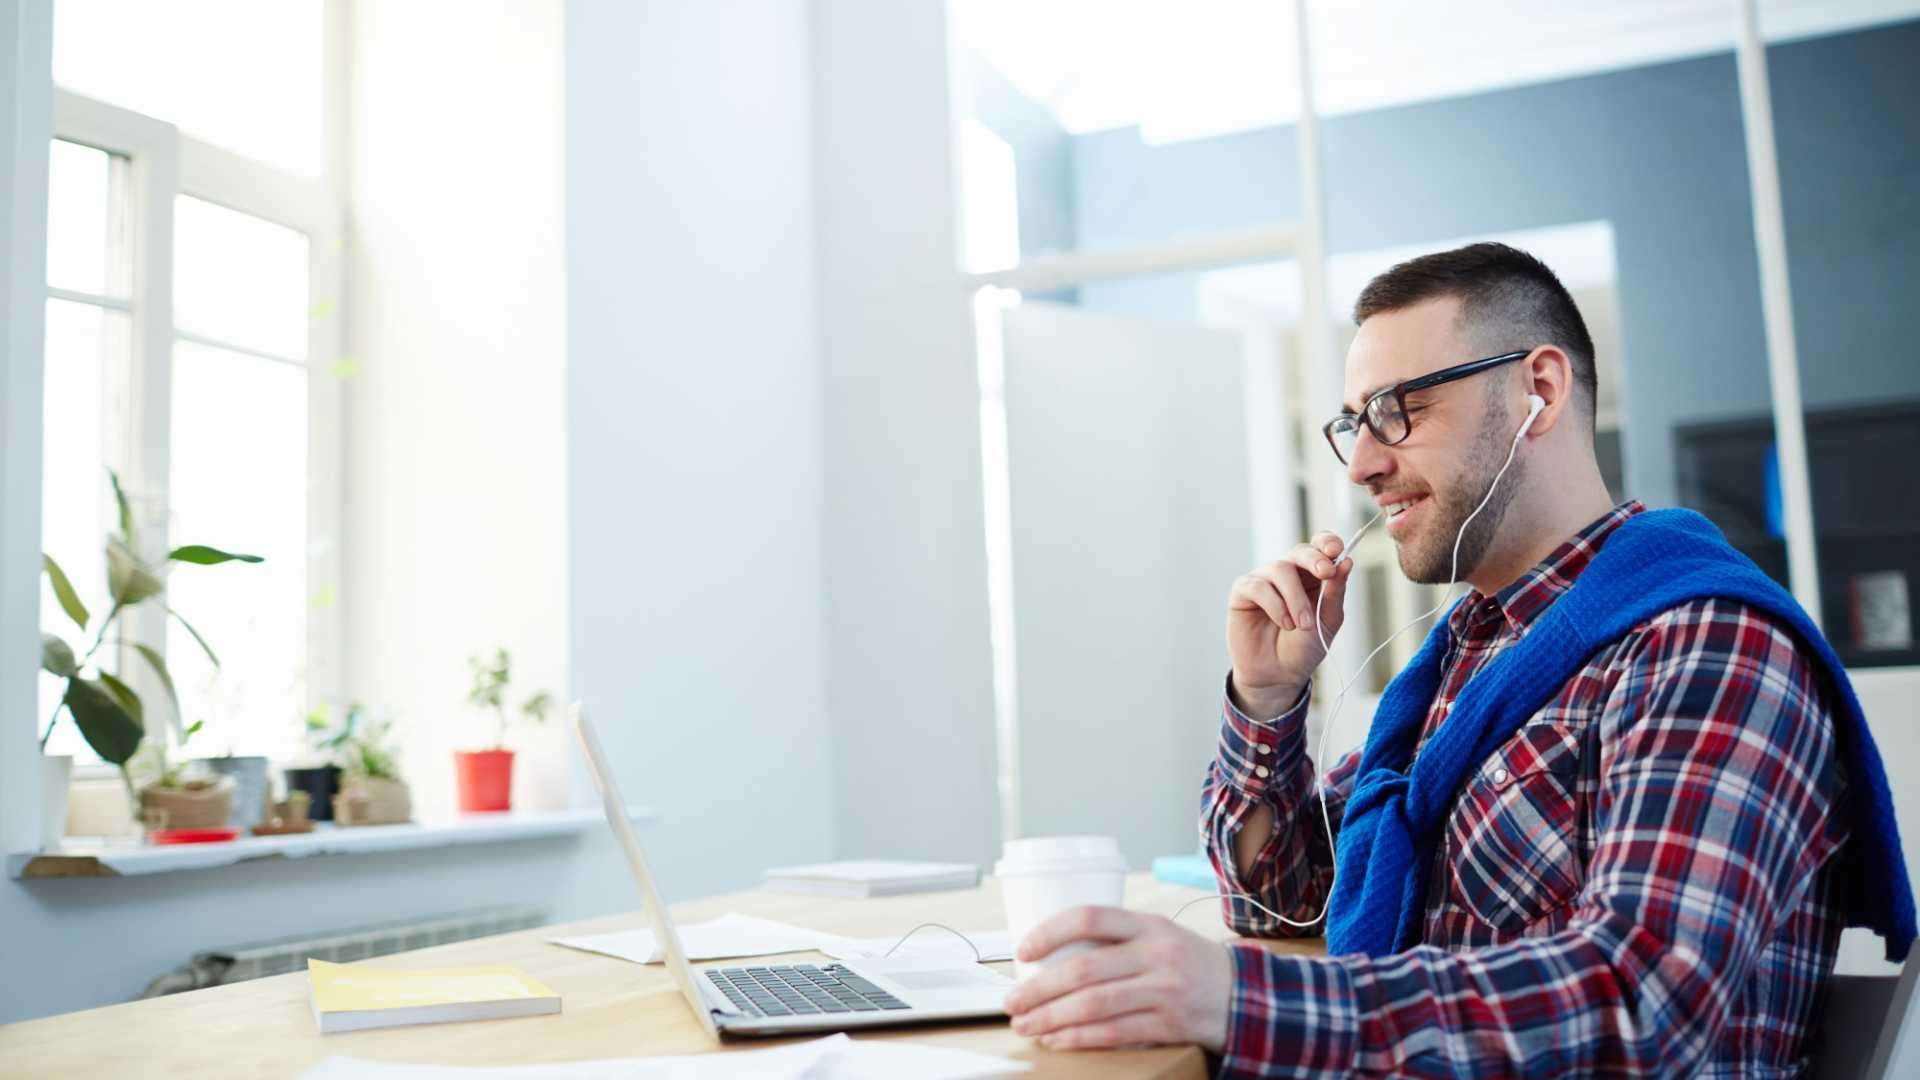 How to Motivate Your Remote Team and Maximize Productivity